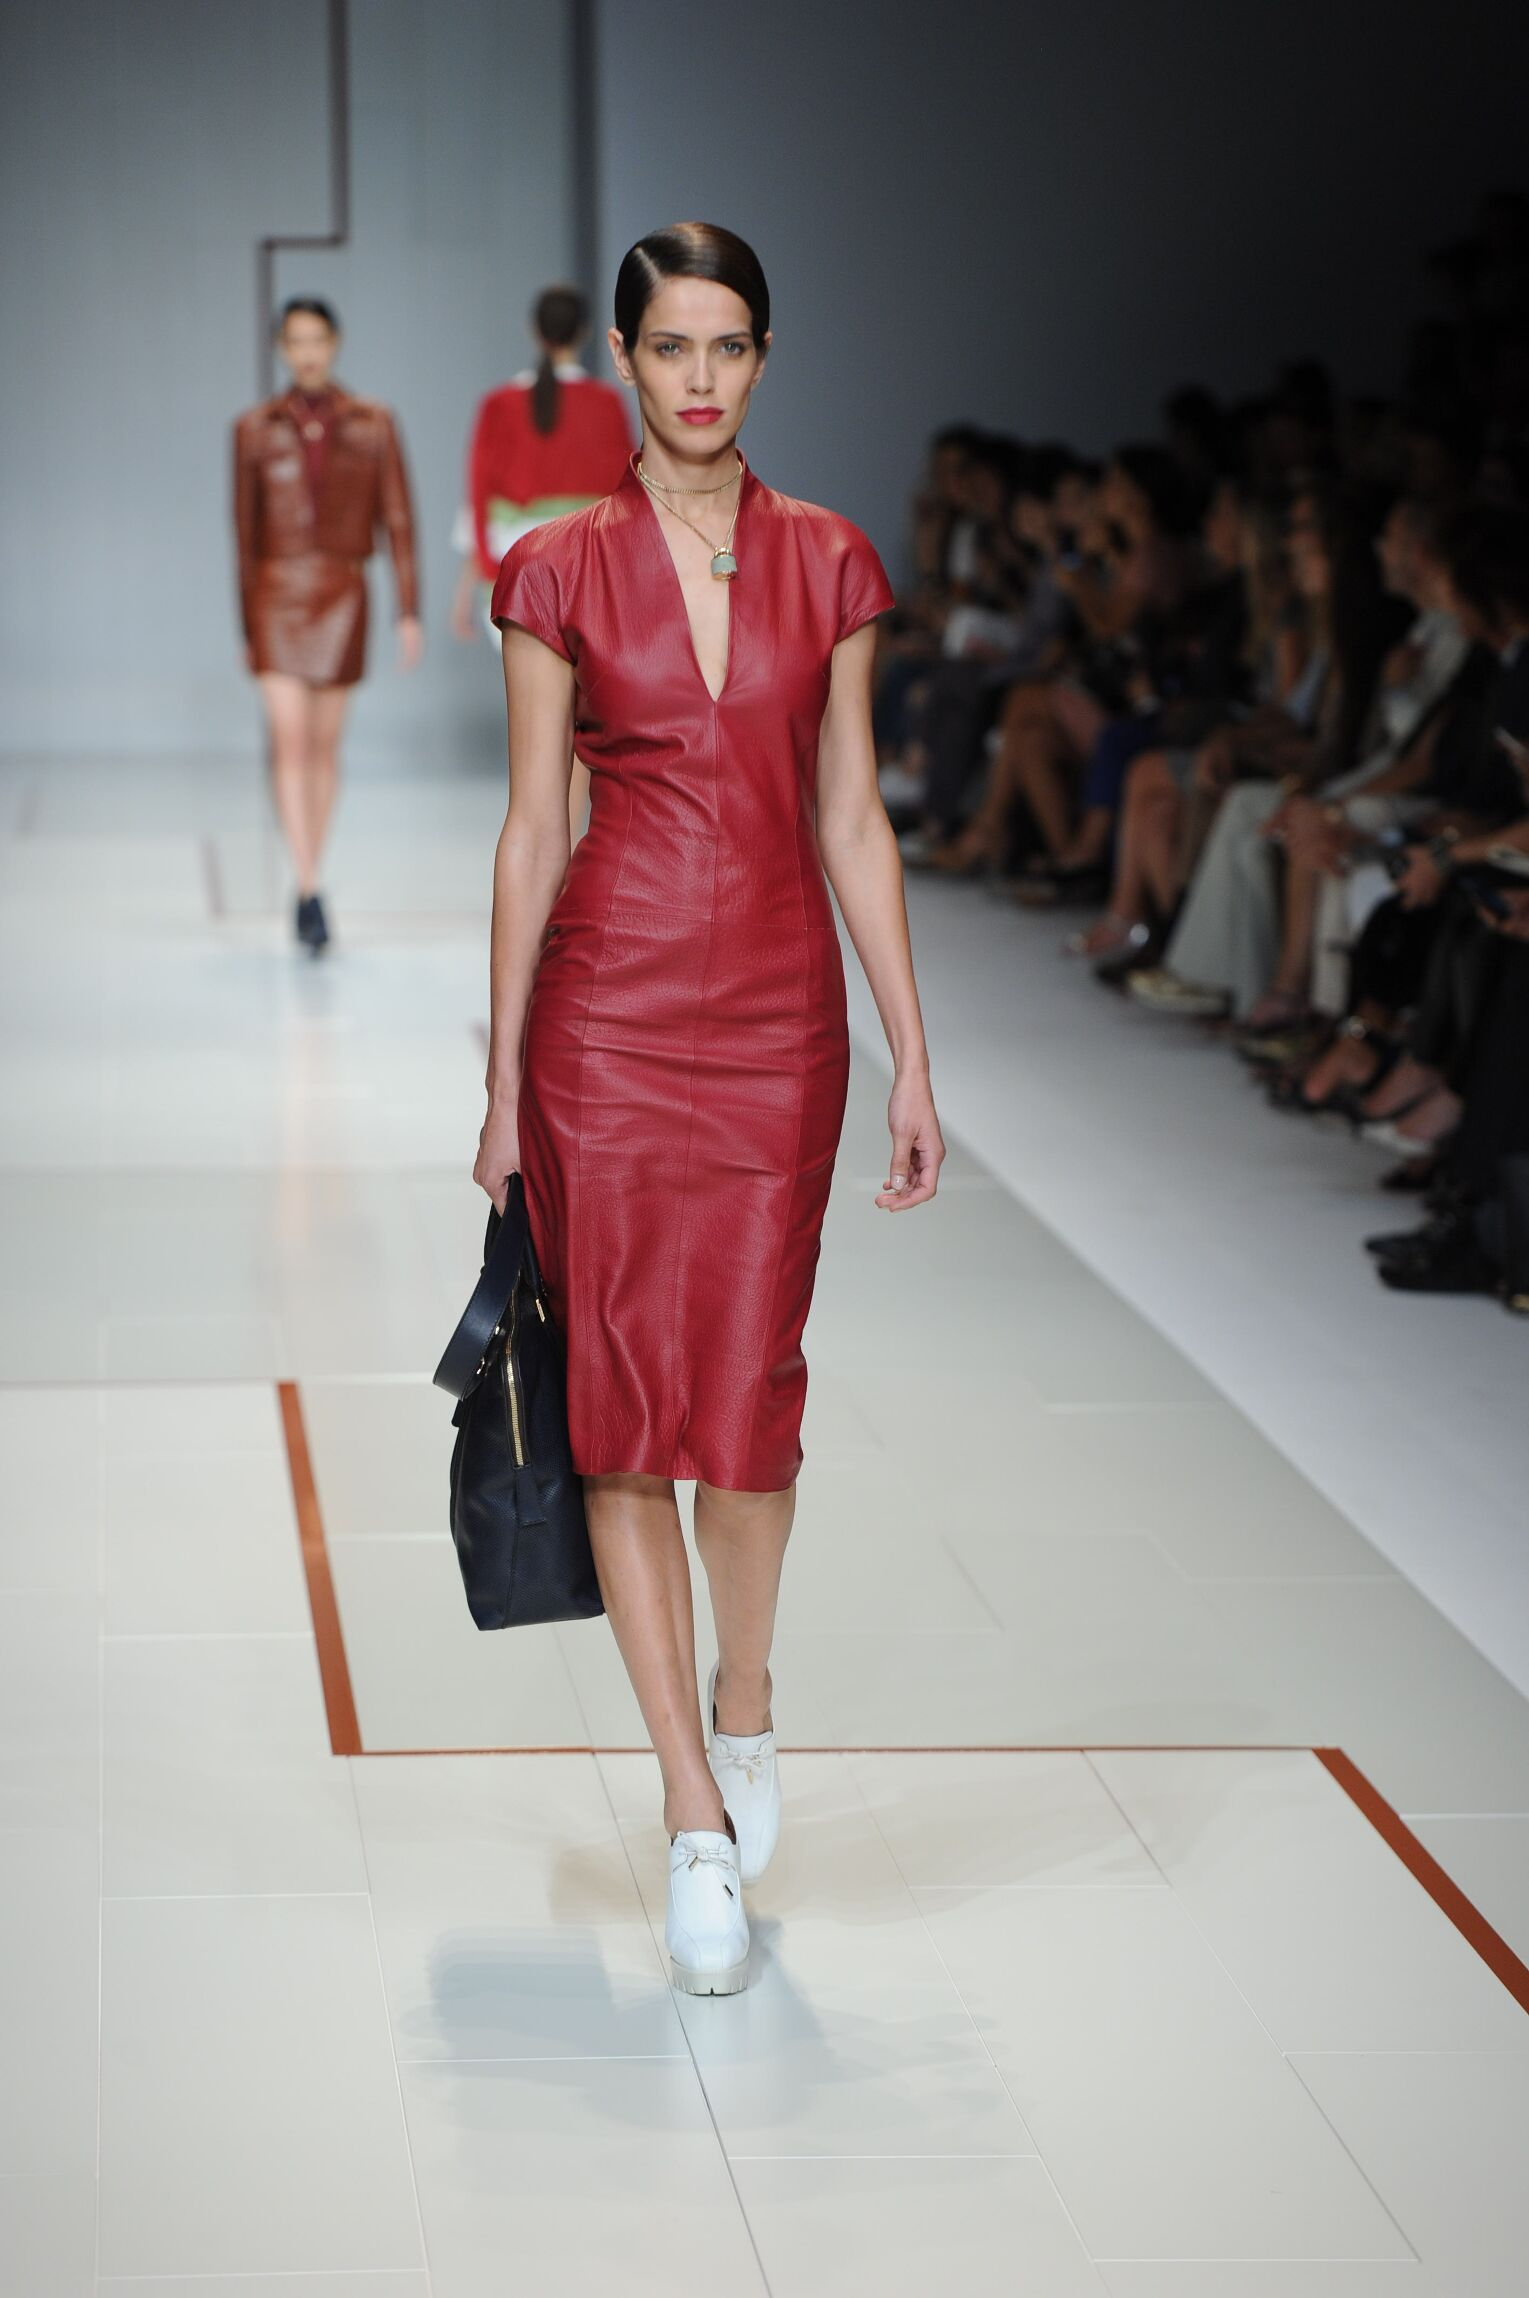 Runway Trussardi Spring Summer 2015 Women's Collection Milan Fashion Week